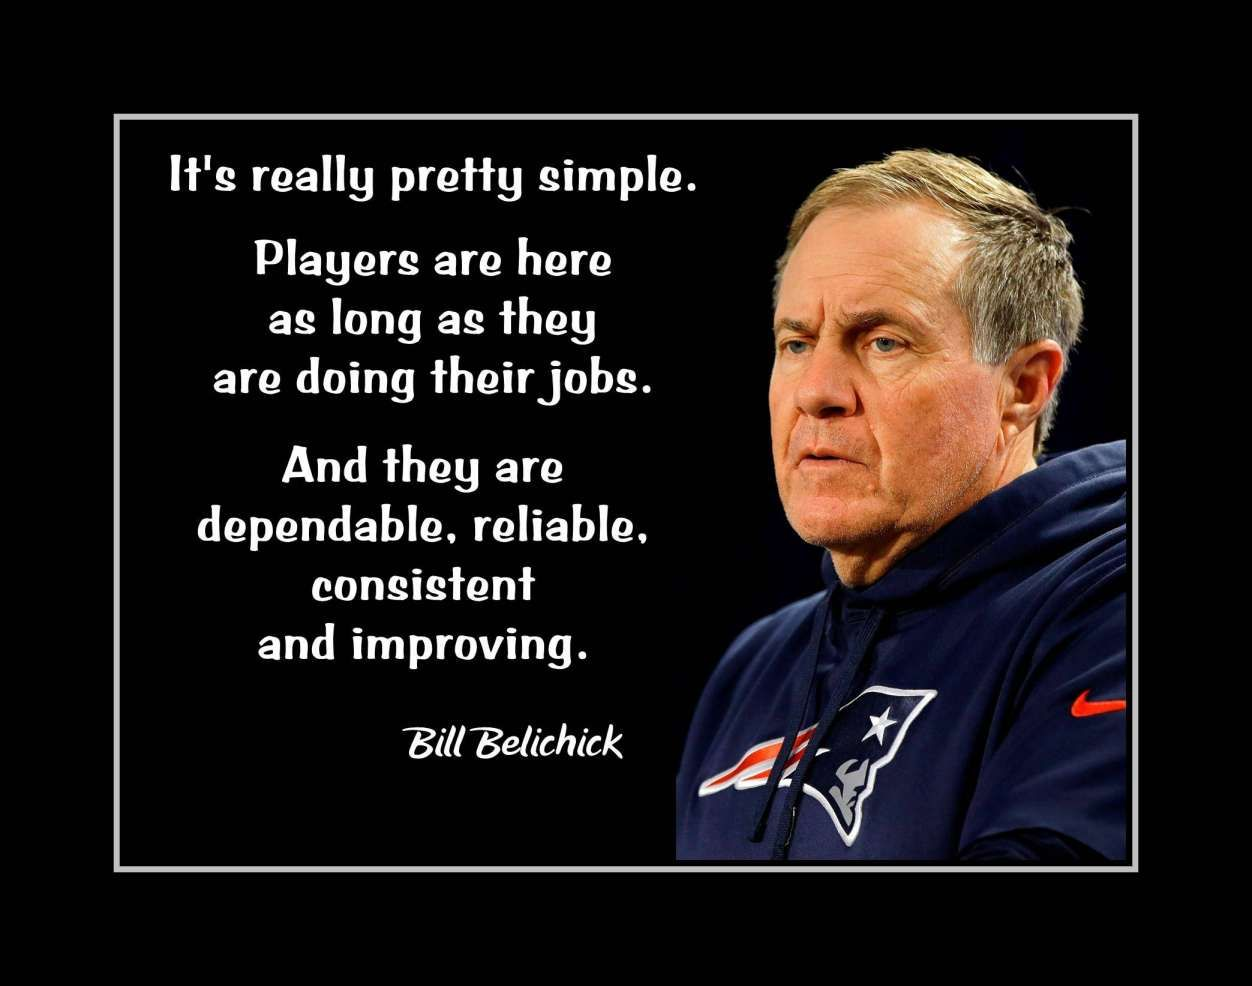 10 Bill Belichick Inspirational Quotes Inspiration Quotesjoke Com In 2020 Inspirational Quotes Wall Art Leadership Quotes Inspirational Quotes